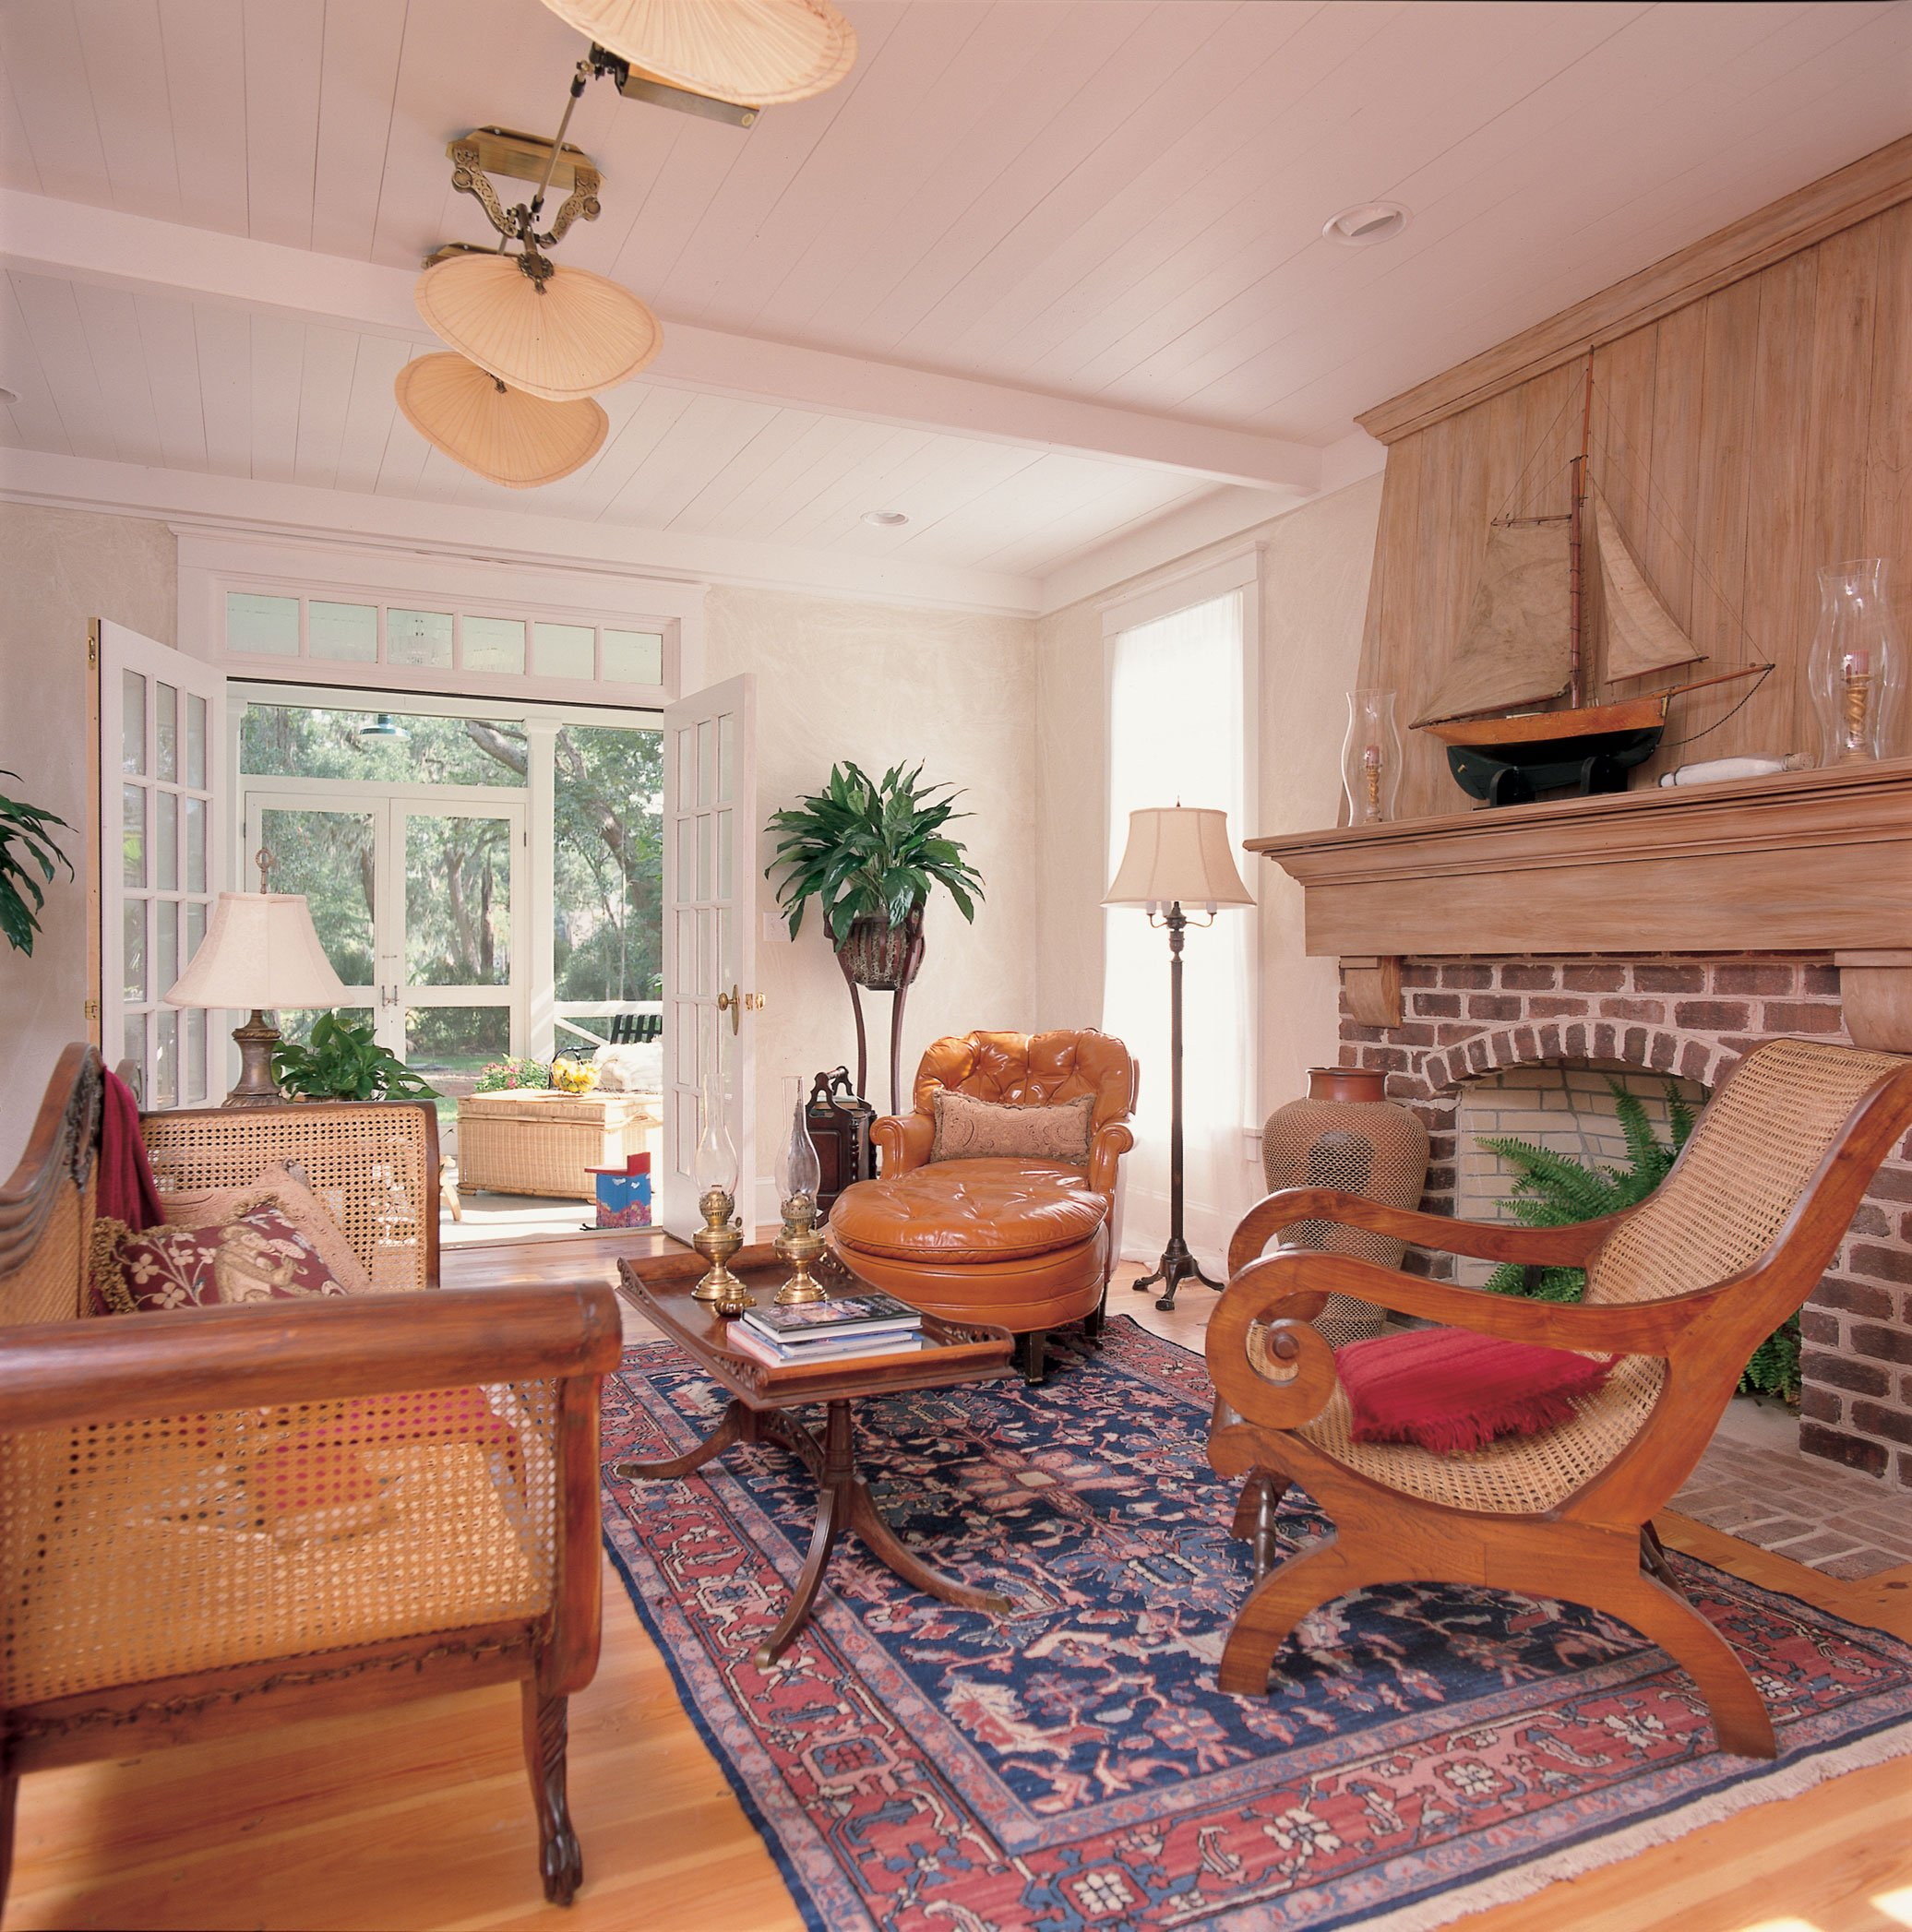 Cape cod home old key west house - Cape cod house interior ...